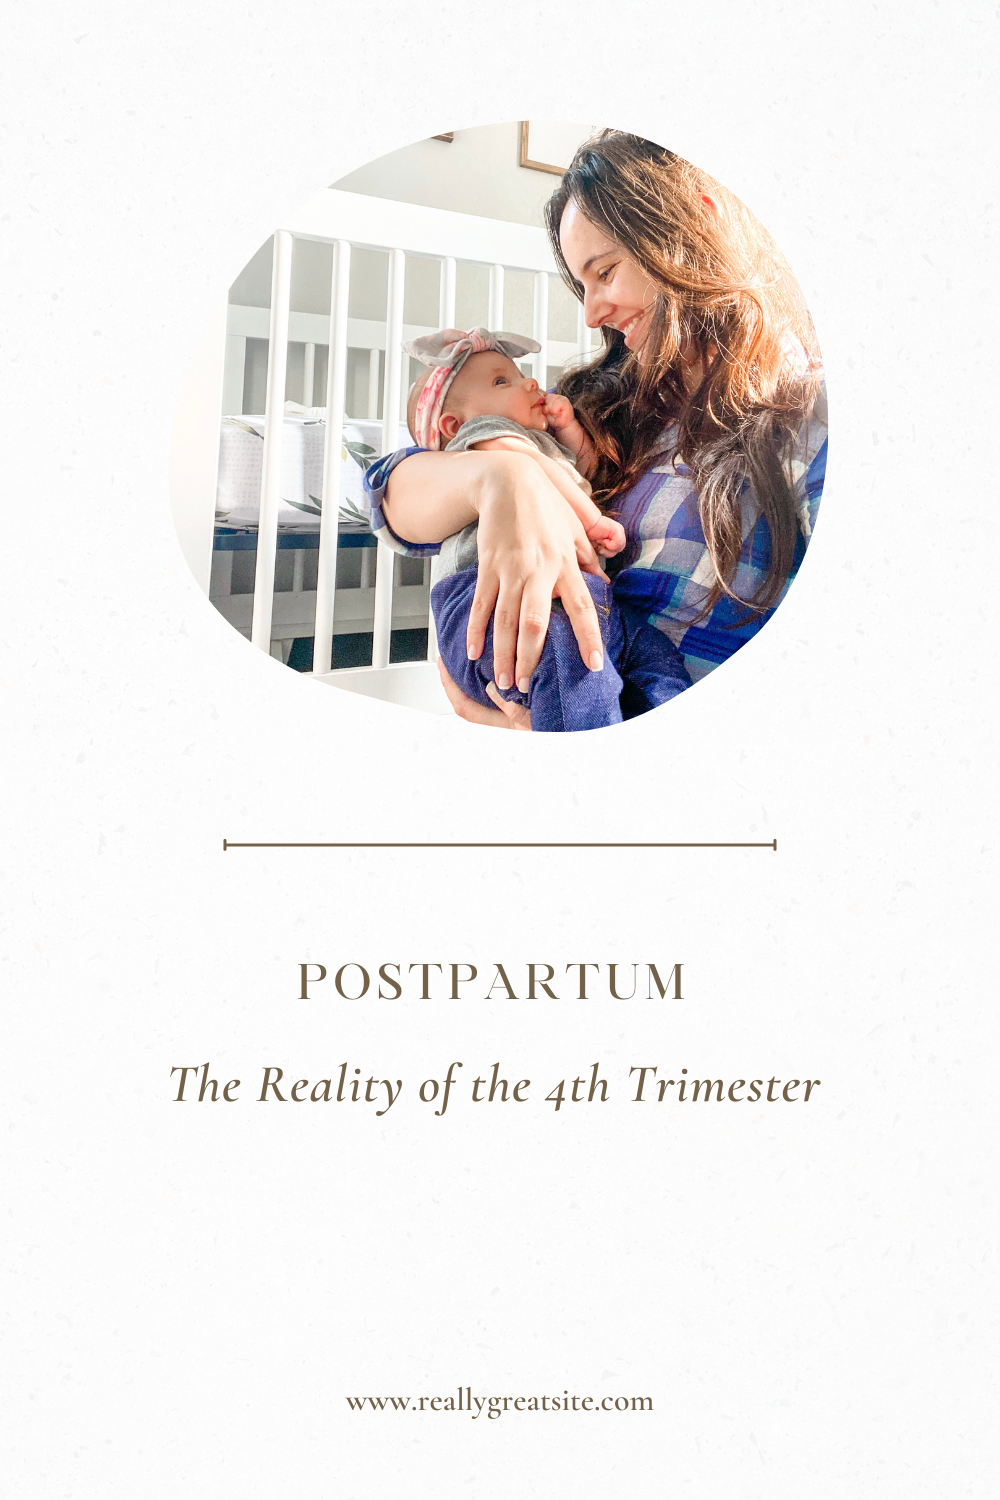 The 4th Trimester – What You Need to Know